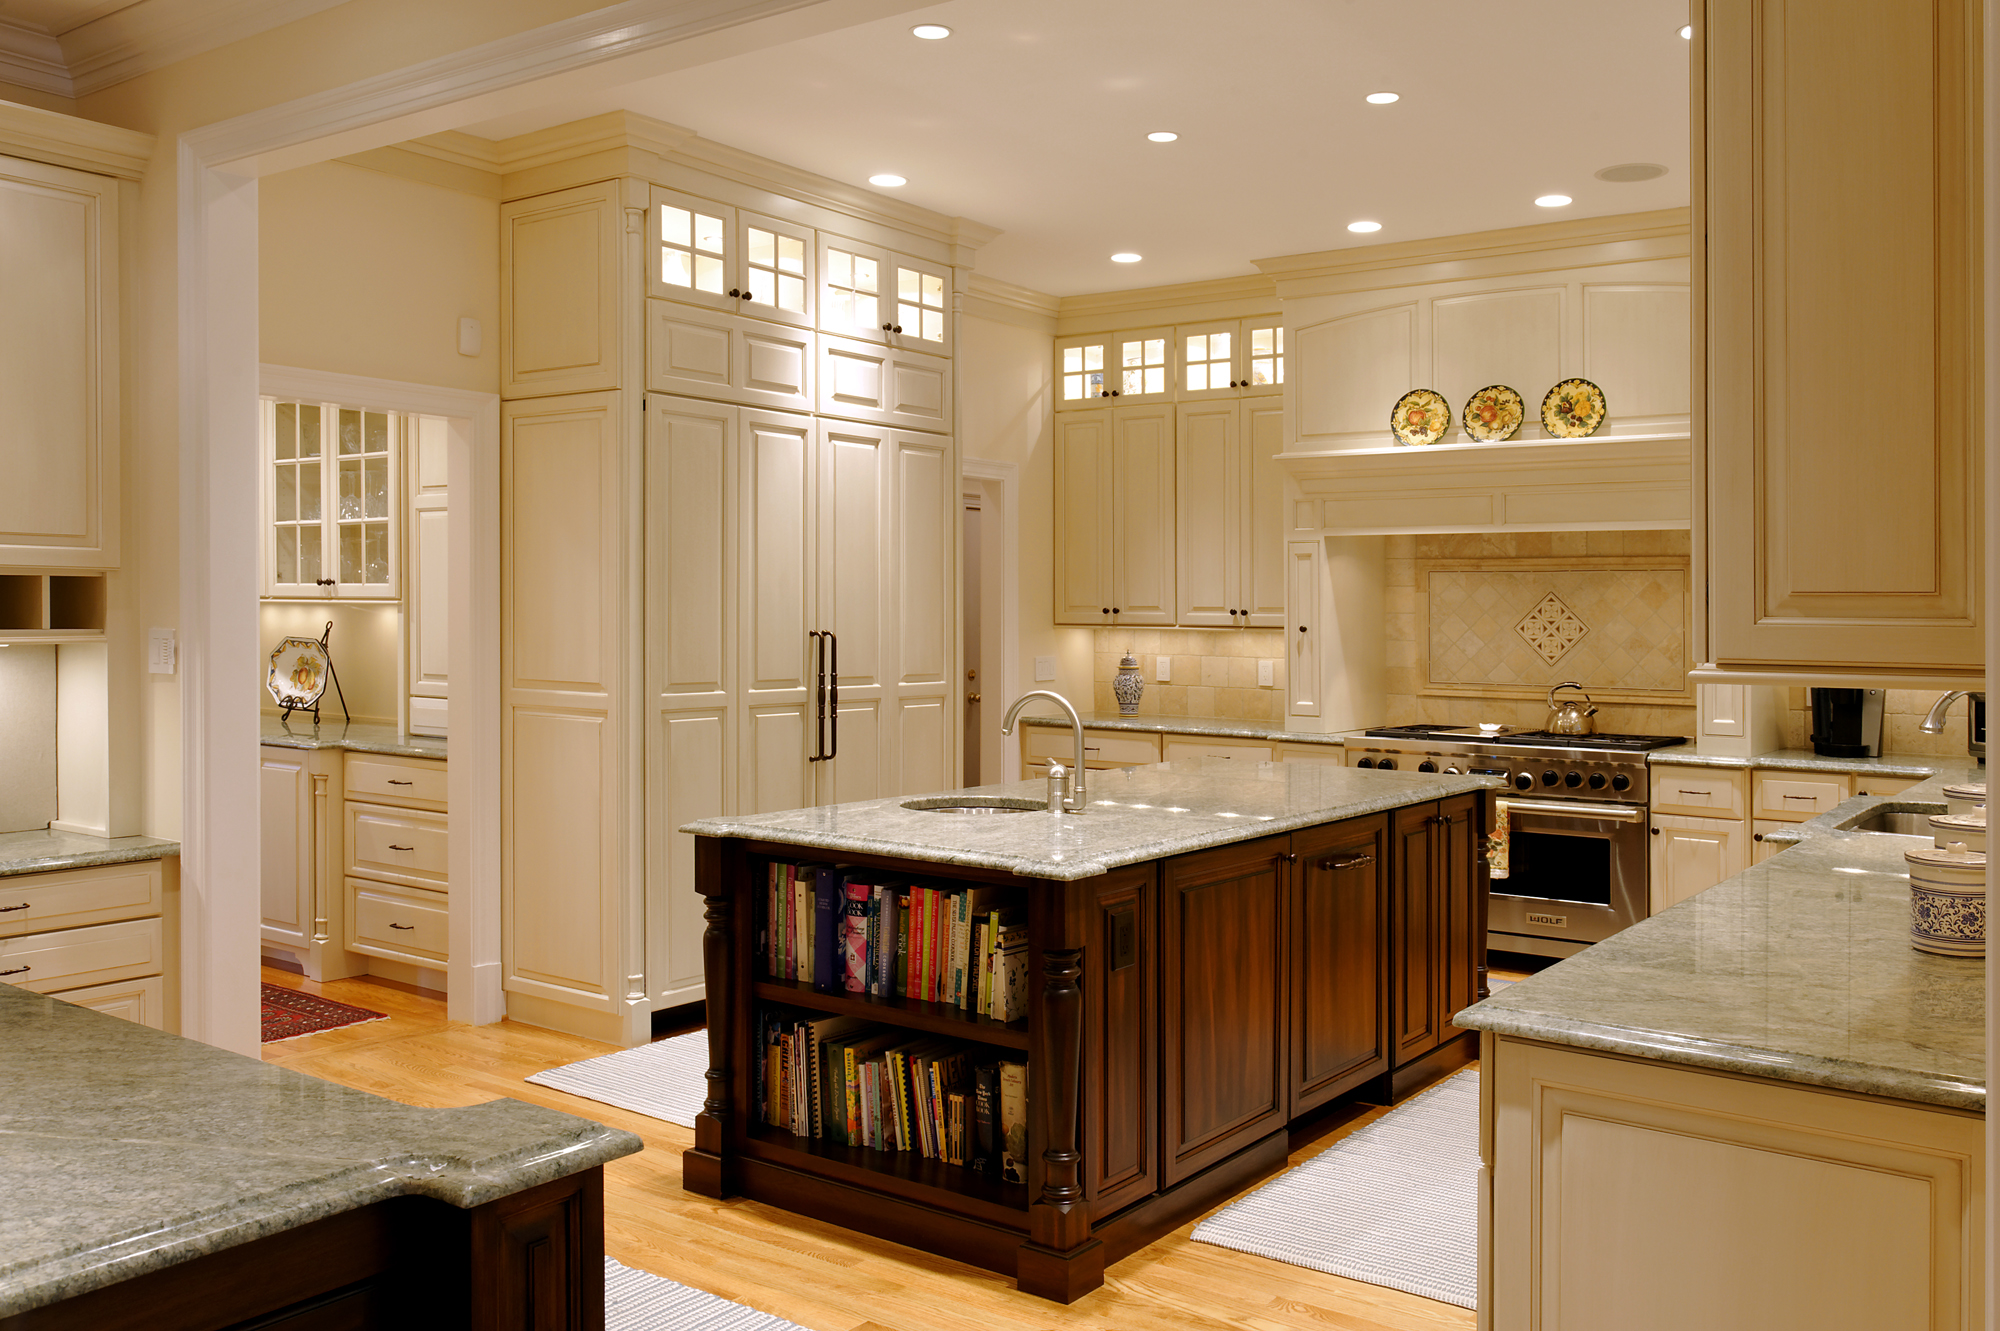 mclean, virginia kitchen renovation and screened porch addition | bowa